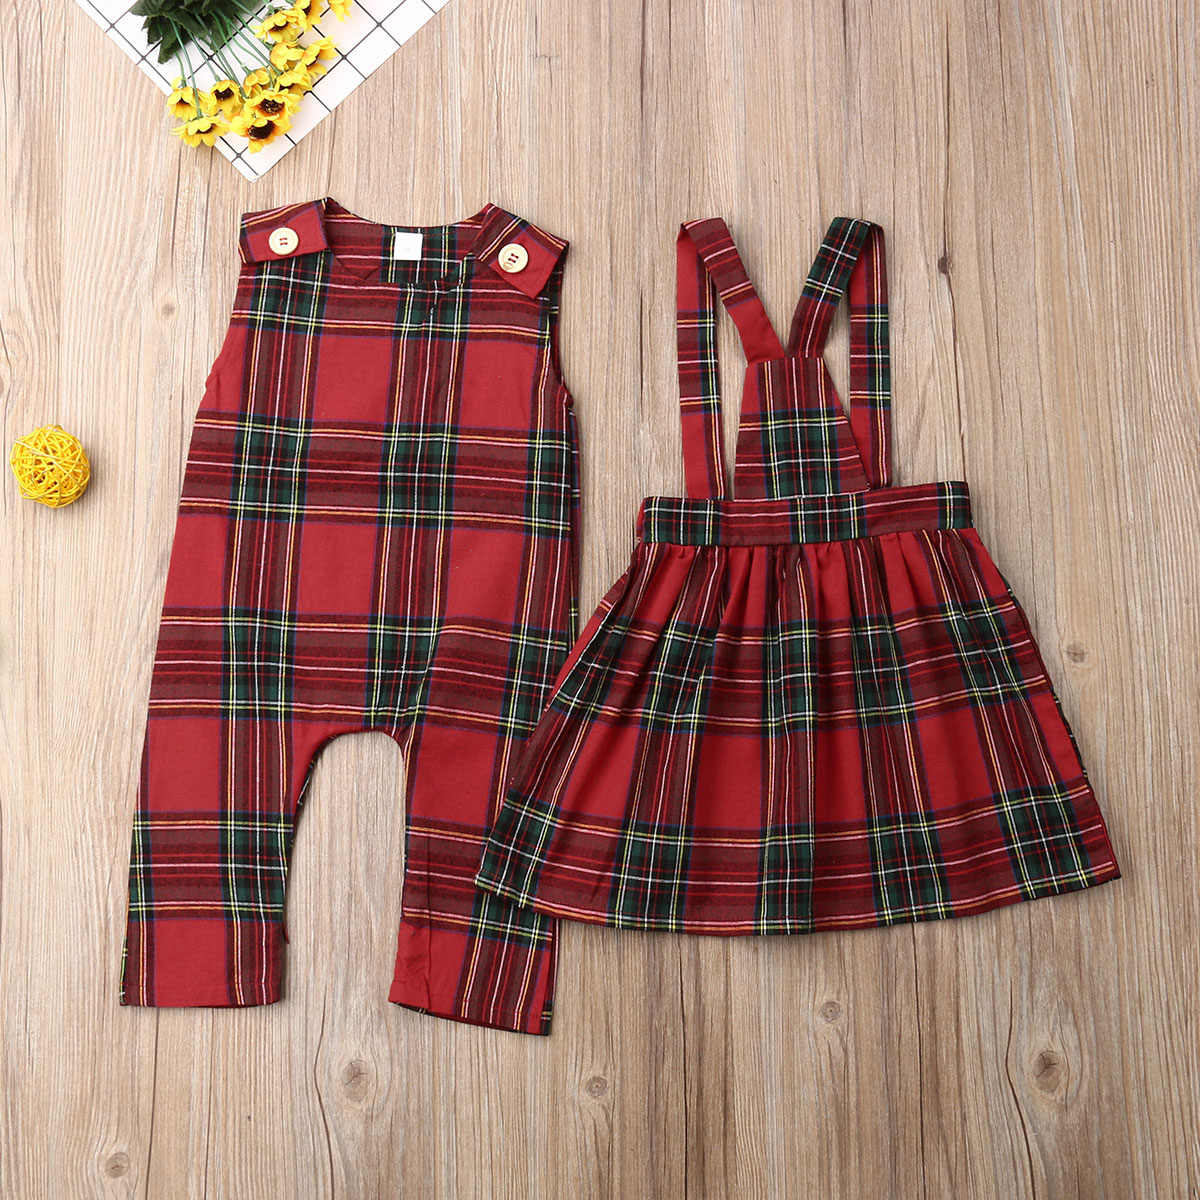 Familie Bijpassende Outfits Peuter Baby Meisje Zus Match Kerst Romper Jarretel Jurk Overalls Plaid Xmas Outfits